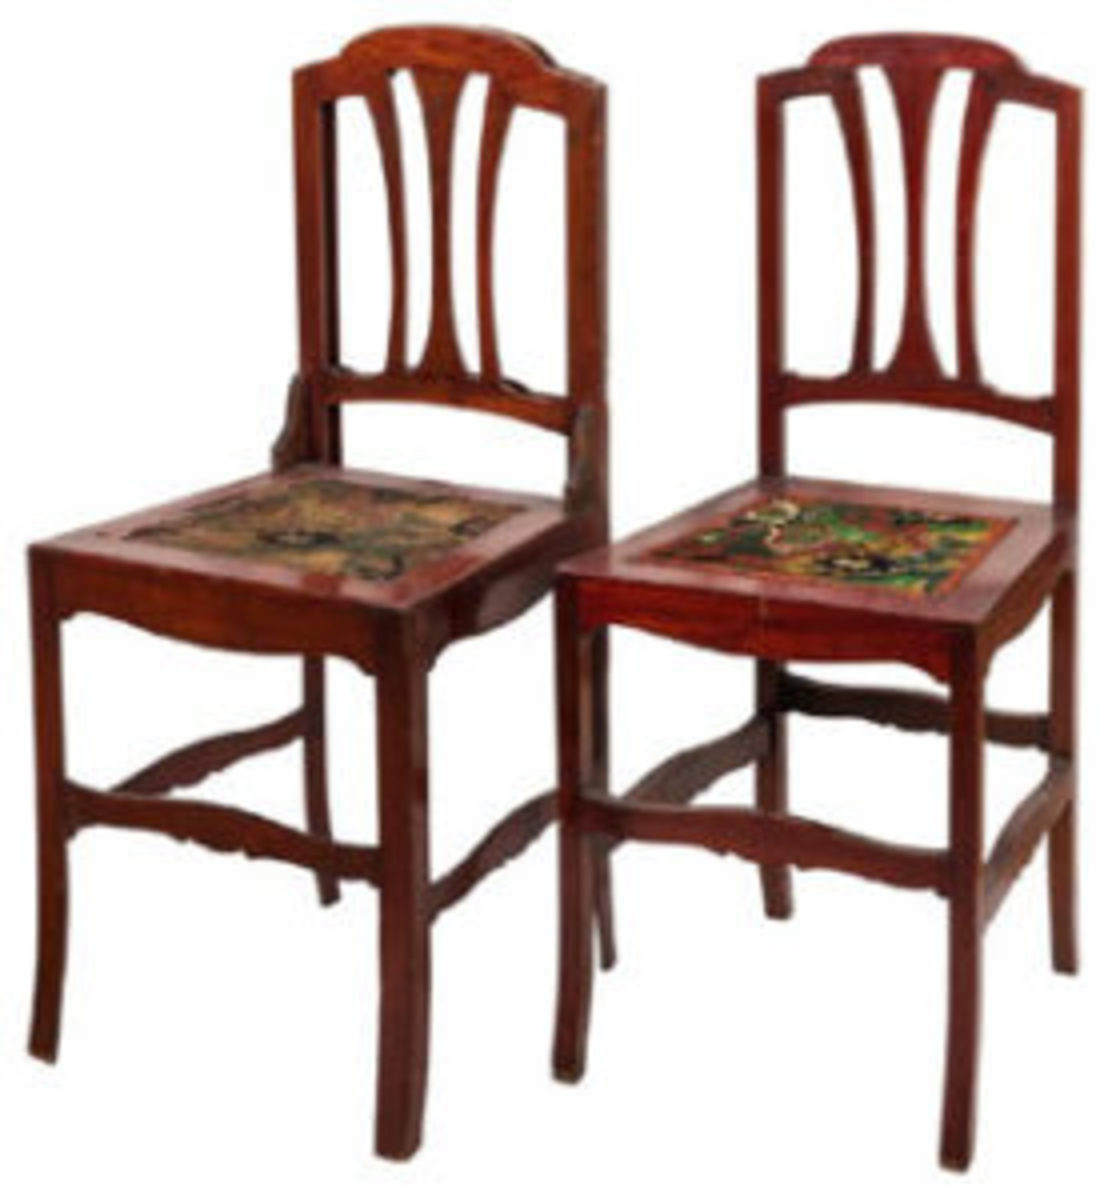 A pair of c. 1938 McDonald Birch's Multiplying Chairs sold for $4,320. This illusion has a wooden chair with a patterned fabric seat suddenly, quickly, and magically, become two matching chairs in the blink of an eye.